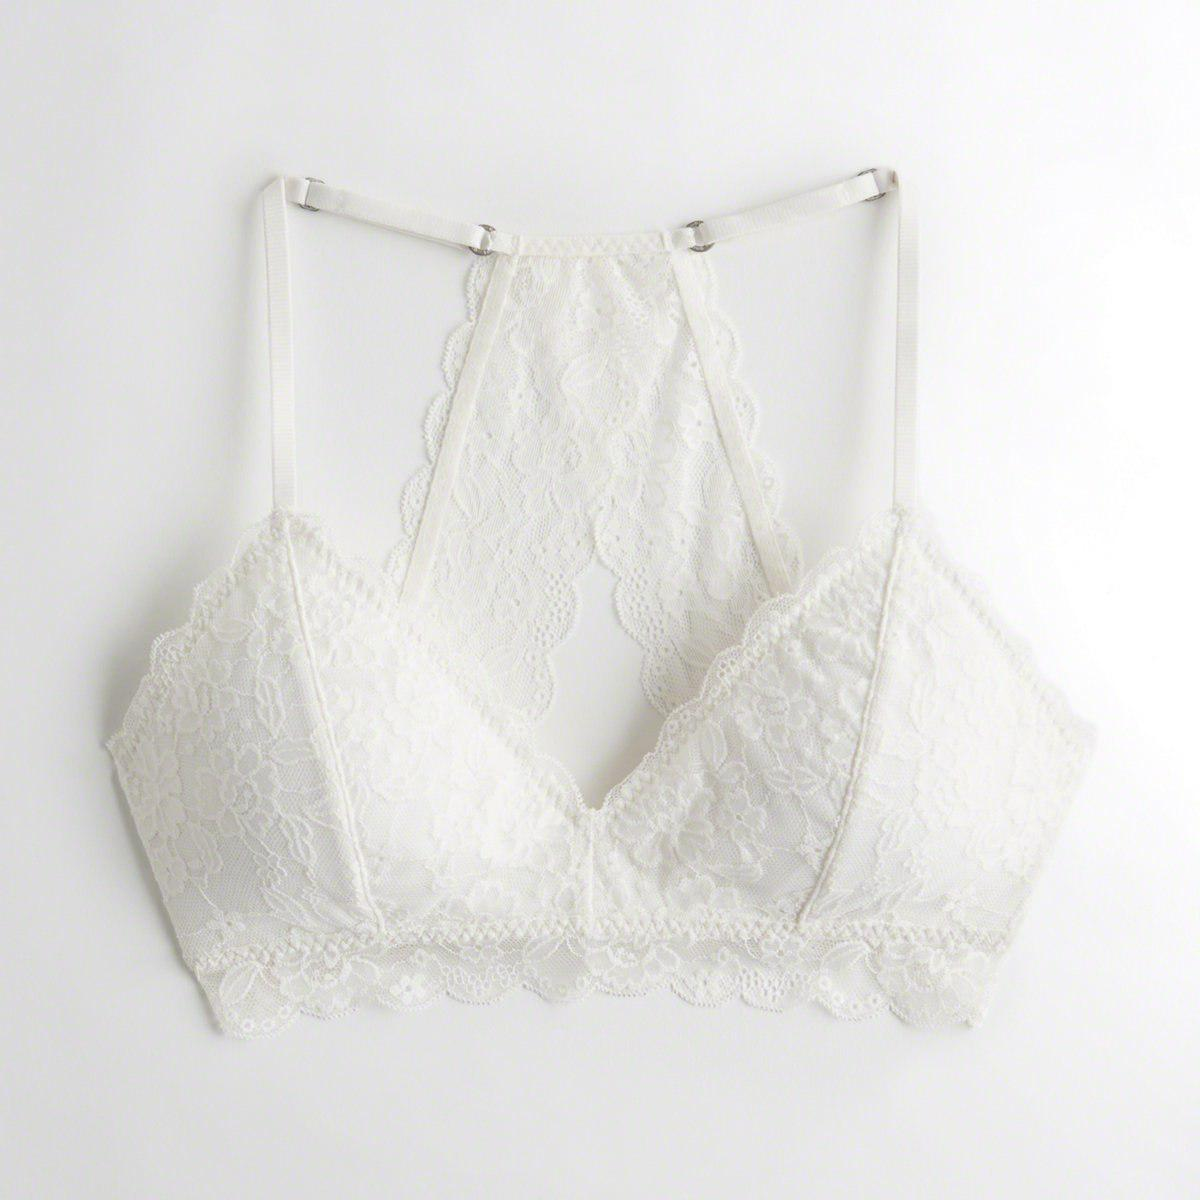 299b6c7949e83 Hollister. Women s White Girls Racerback Triangle Bralette With Removable  Pads From Hollister